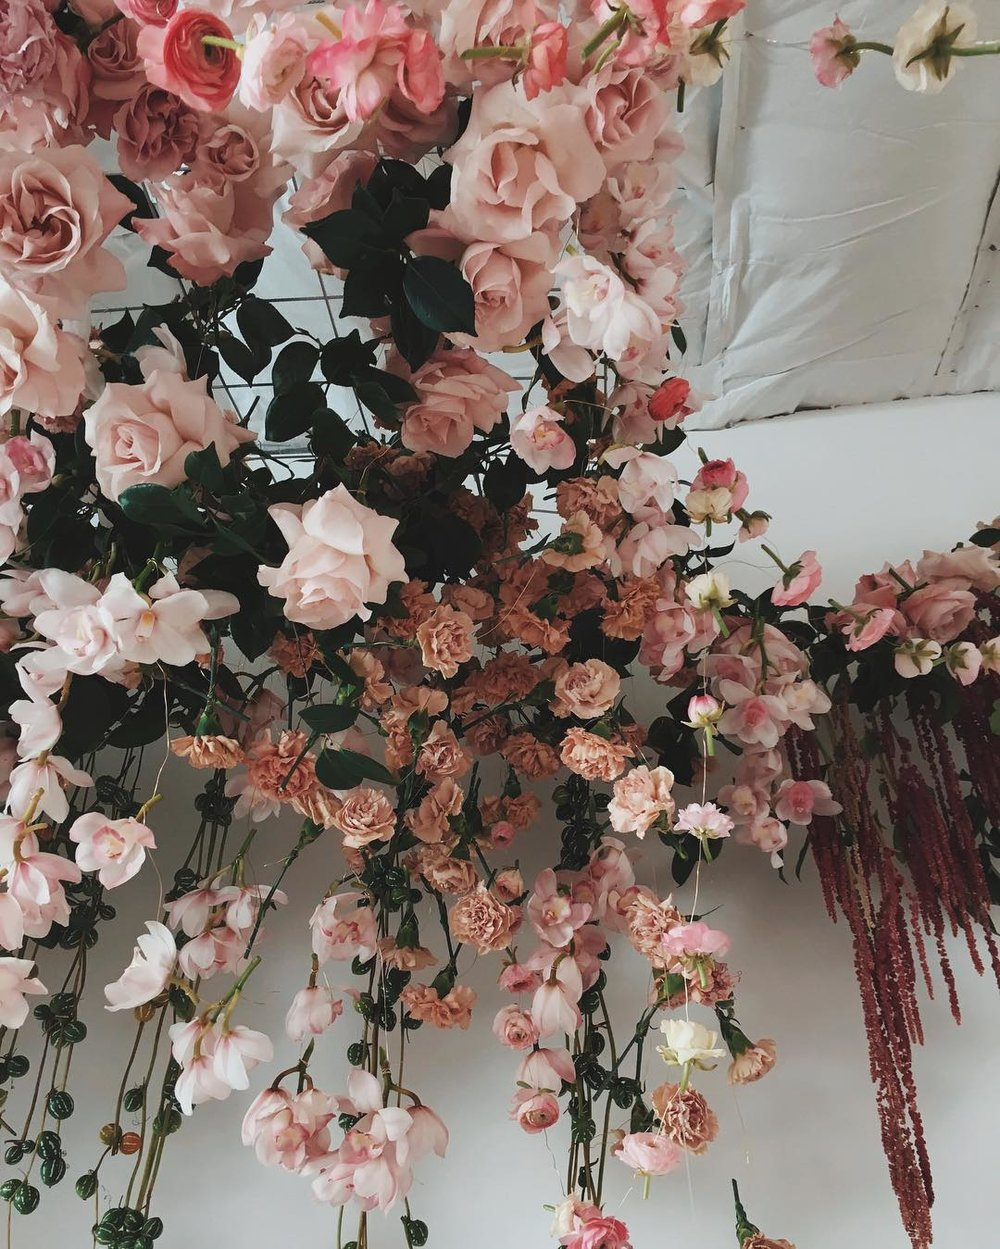 300_carnations__200_roses__100_peonies__and_I_lost_count_after_that..jpg